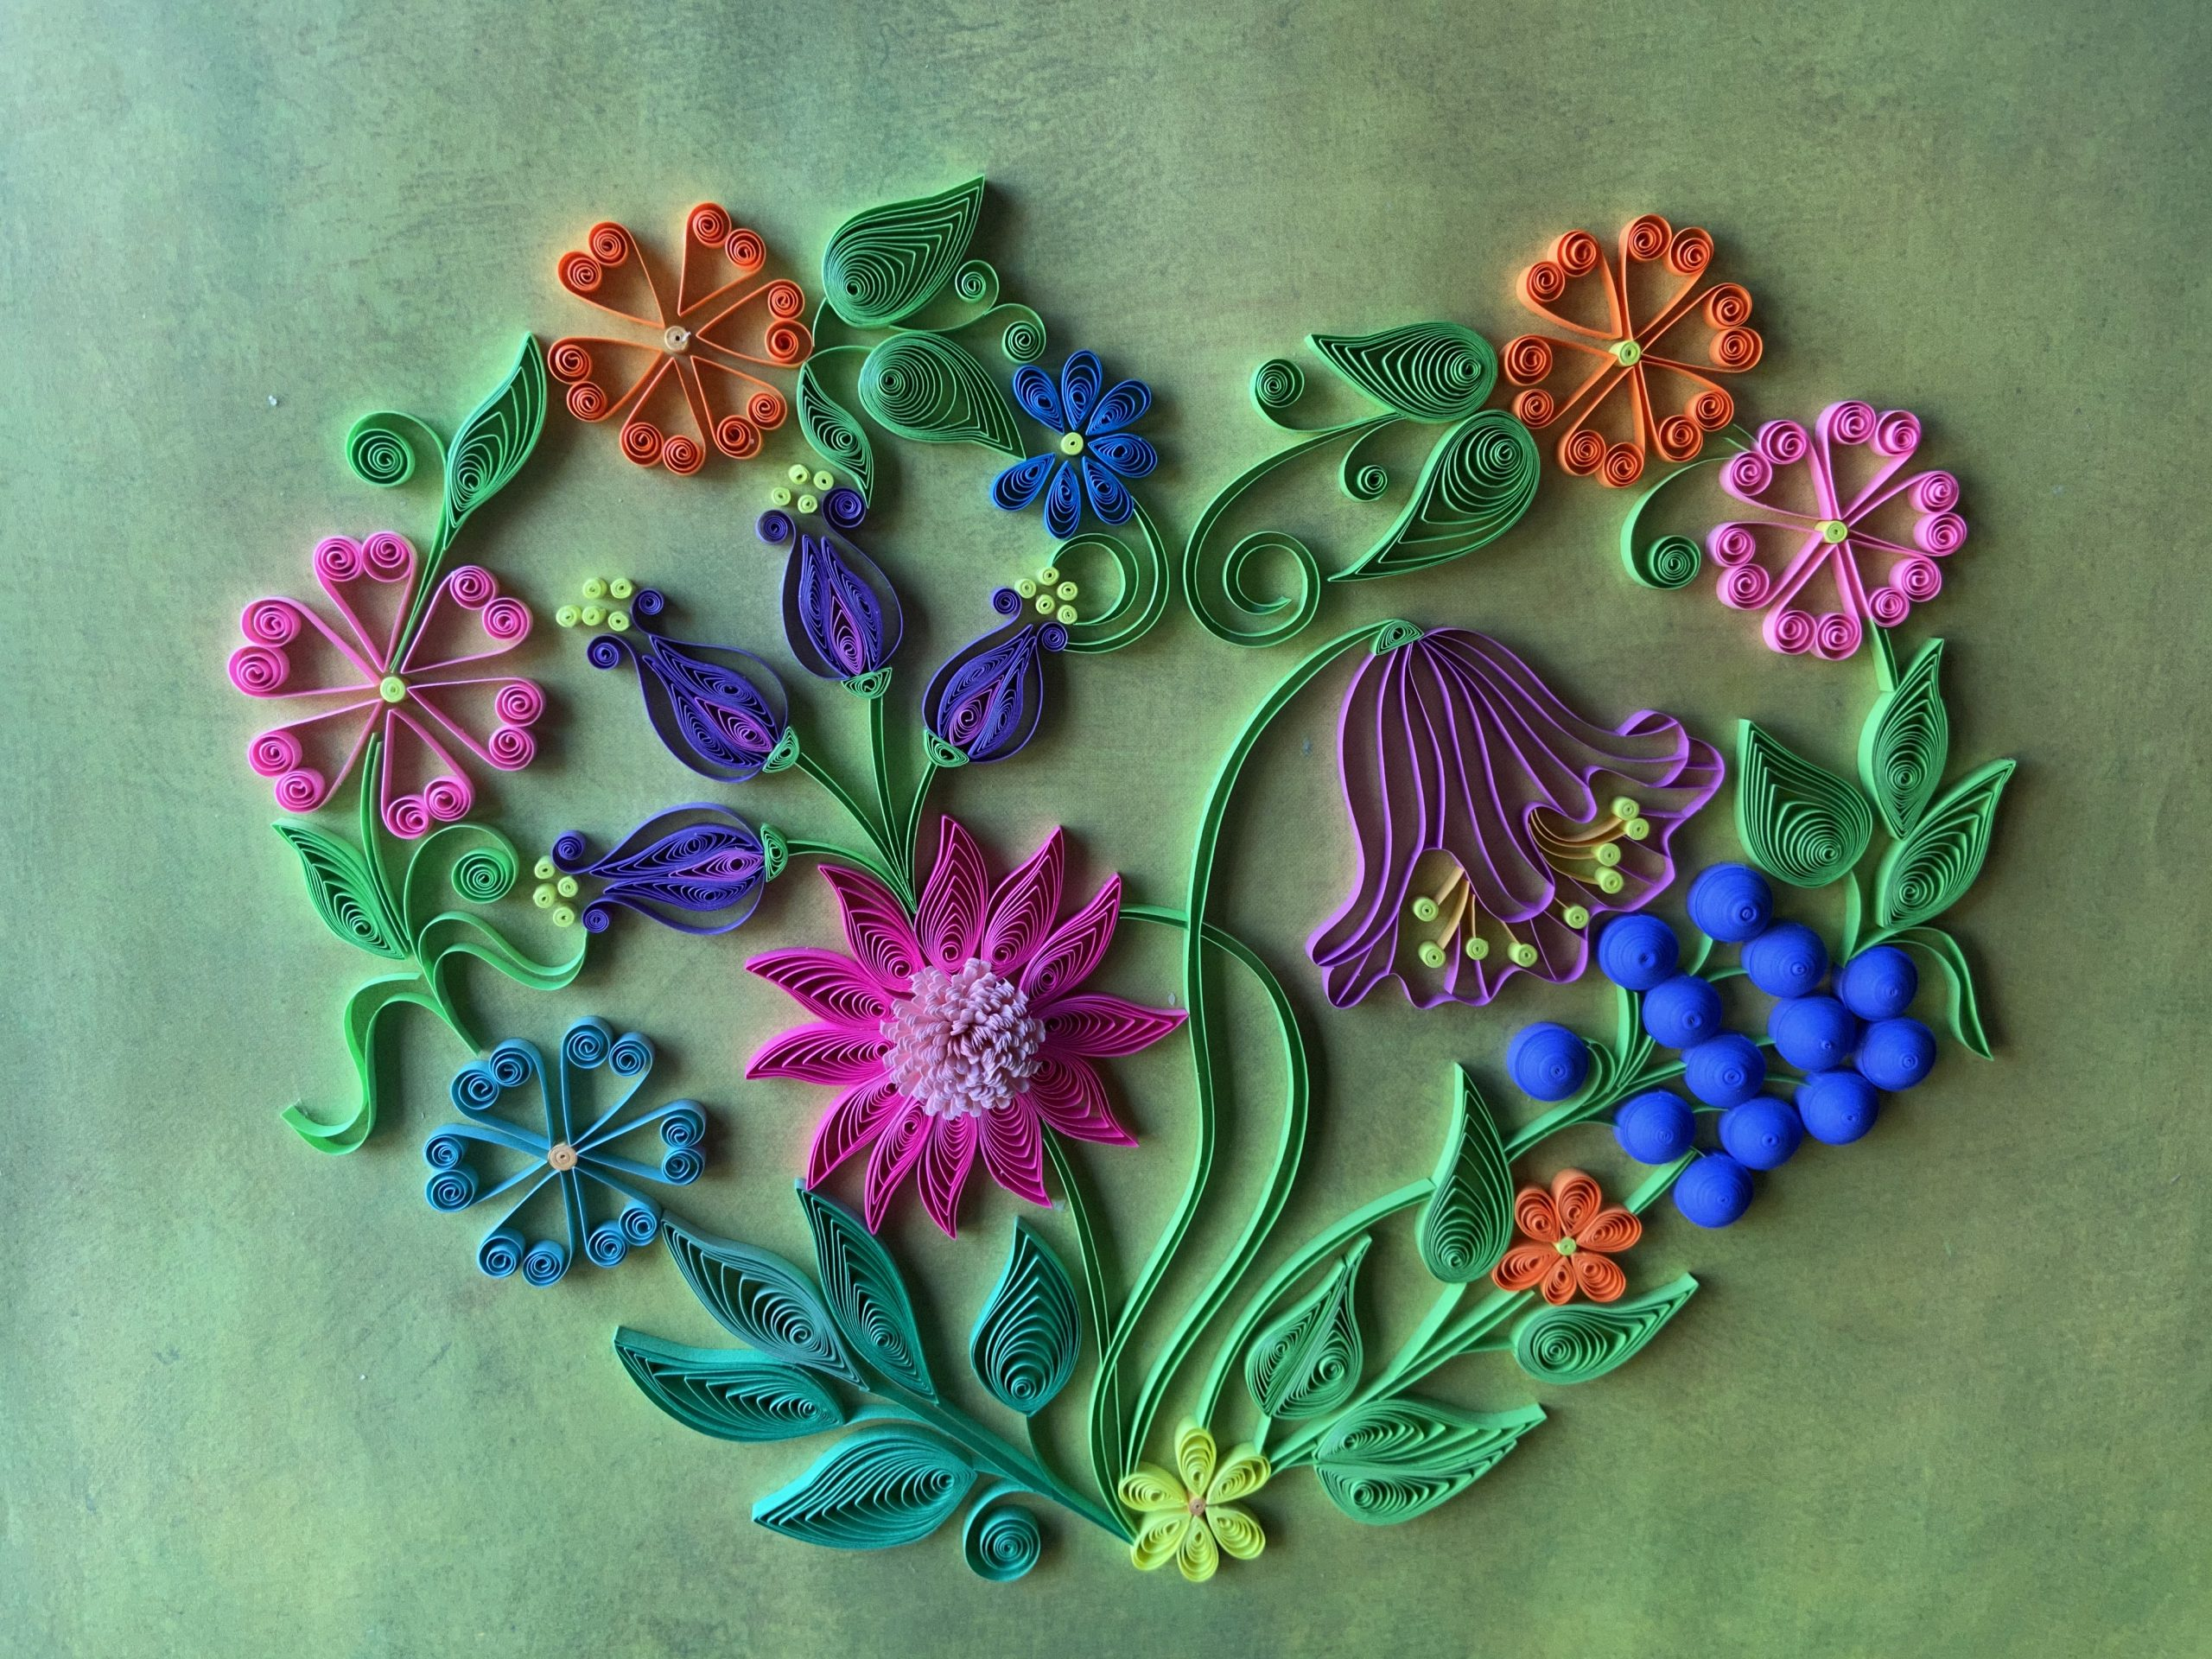 Introduction to Quilling with Lana Lechkina